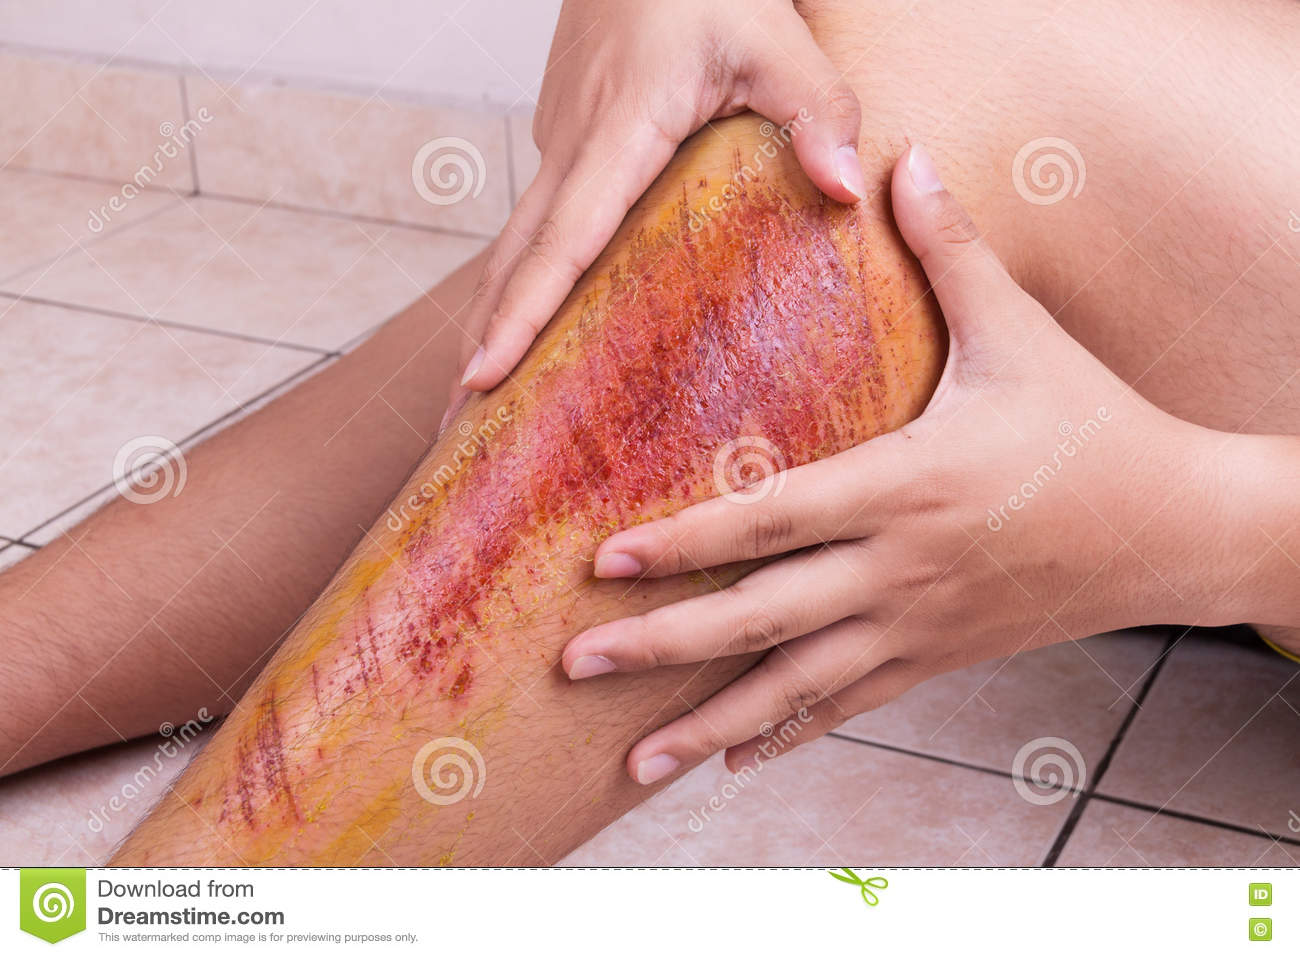 Download Hand Embracing Injured Knee With Painful Abrasion From Fall Stock Image